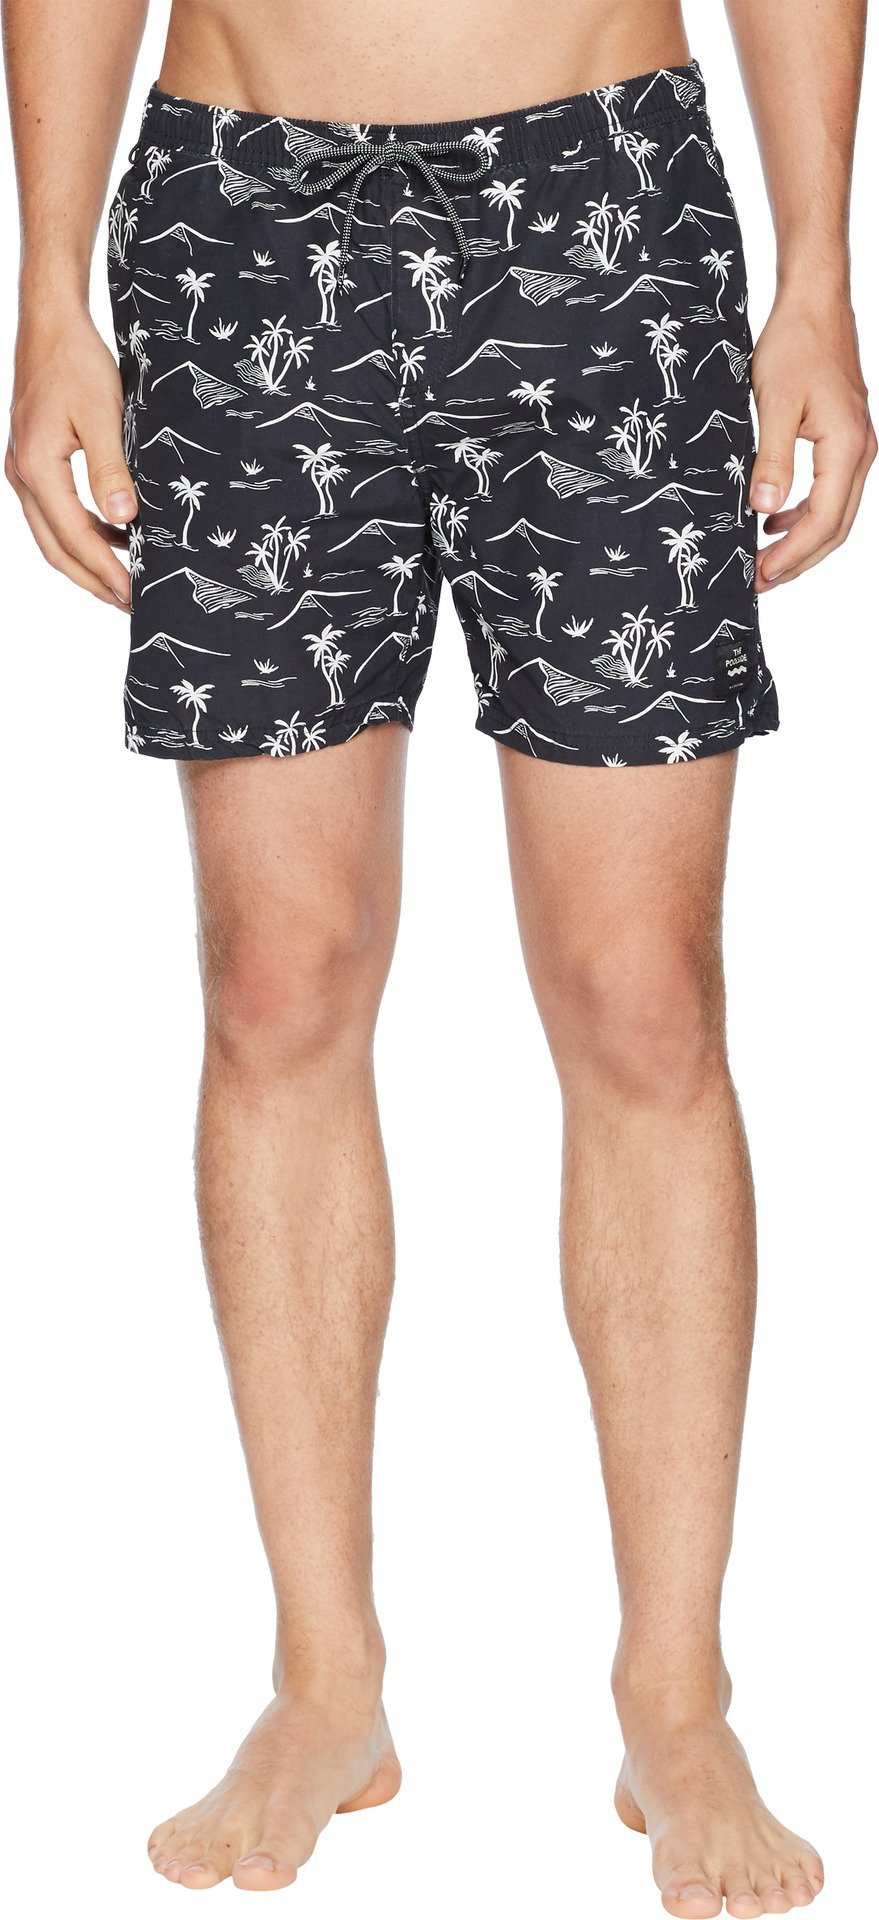 Scotch & Soda Men's Elasticated Swimshort with Colourful All-Over Print, Combo Dye, M